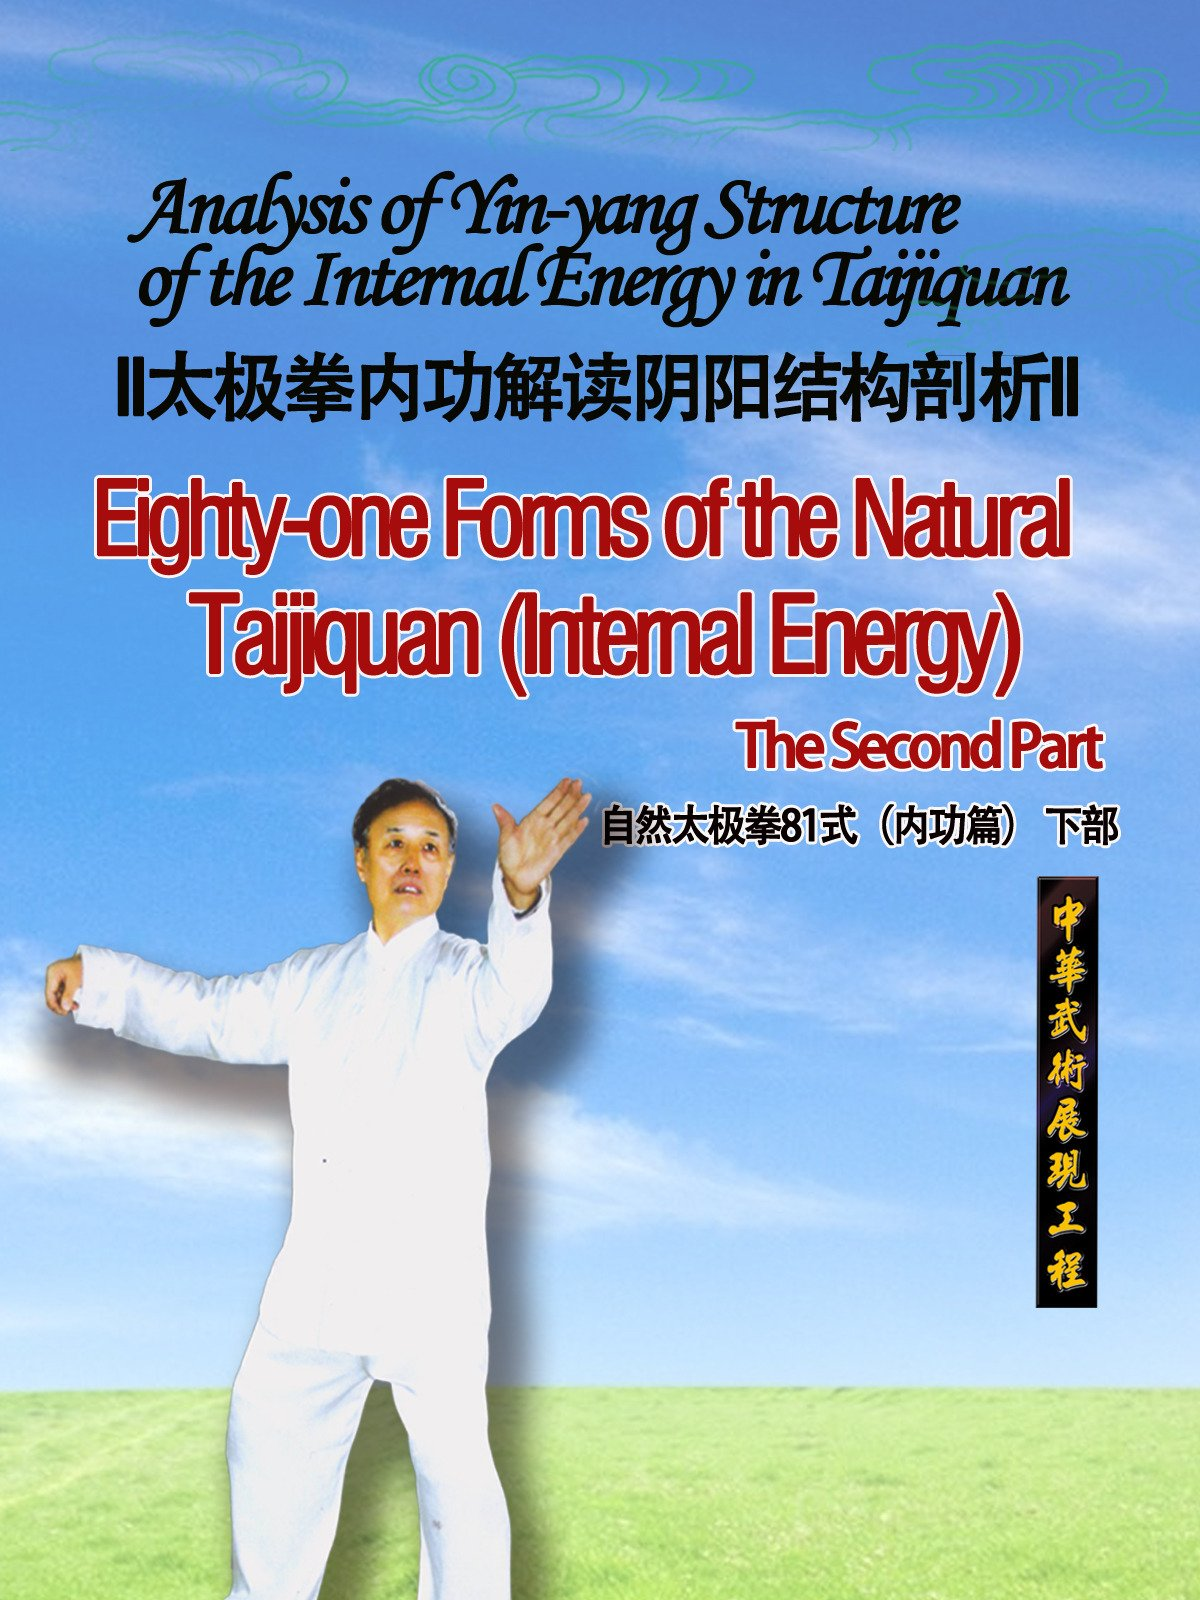 Analysis of Yin-yang Structure of the Internal Energy in Taijiquan-Eighty-one Forms of the Natural Taijiquan (Internal Energy) The Second Part